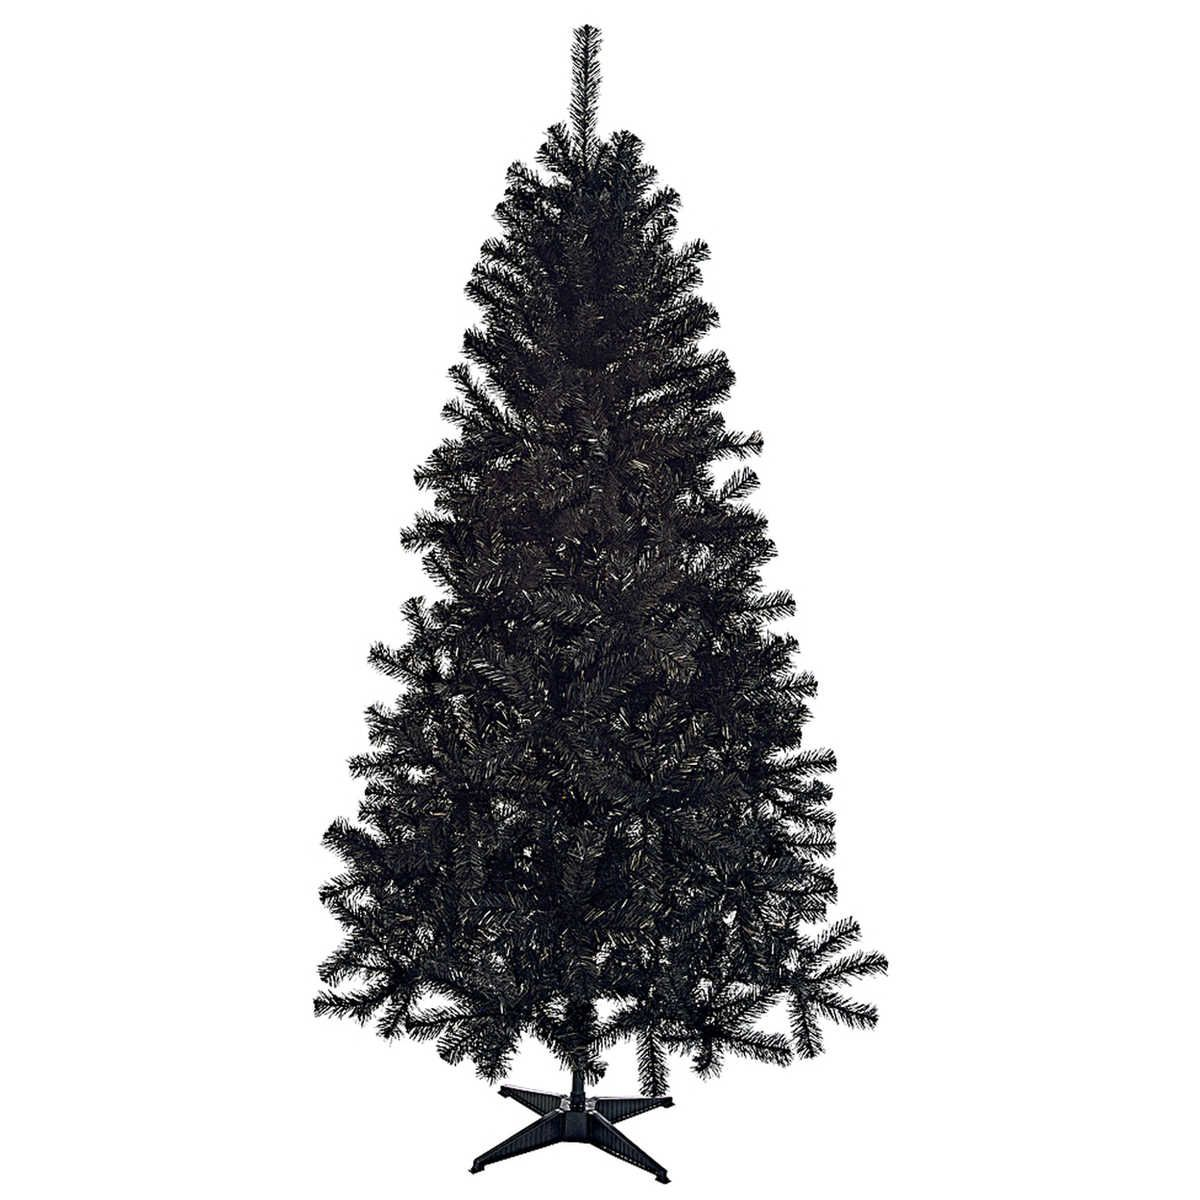 195 Cm Black Forest Pine Christmas Tree Tree No 5 Big W Black Xmas Tree Pine Christmas Tree Christmas Tree